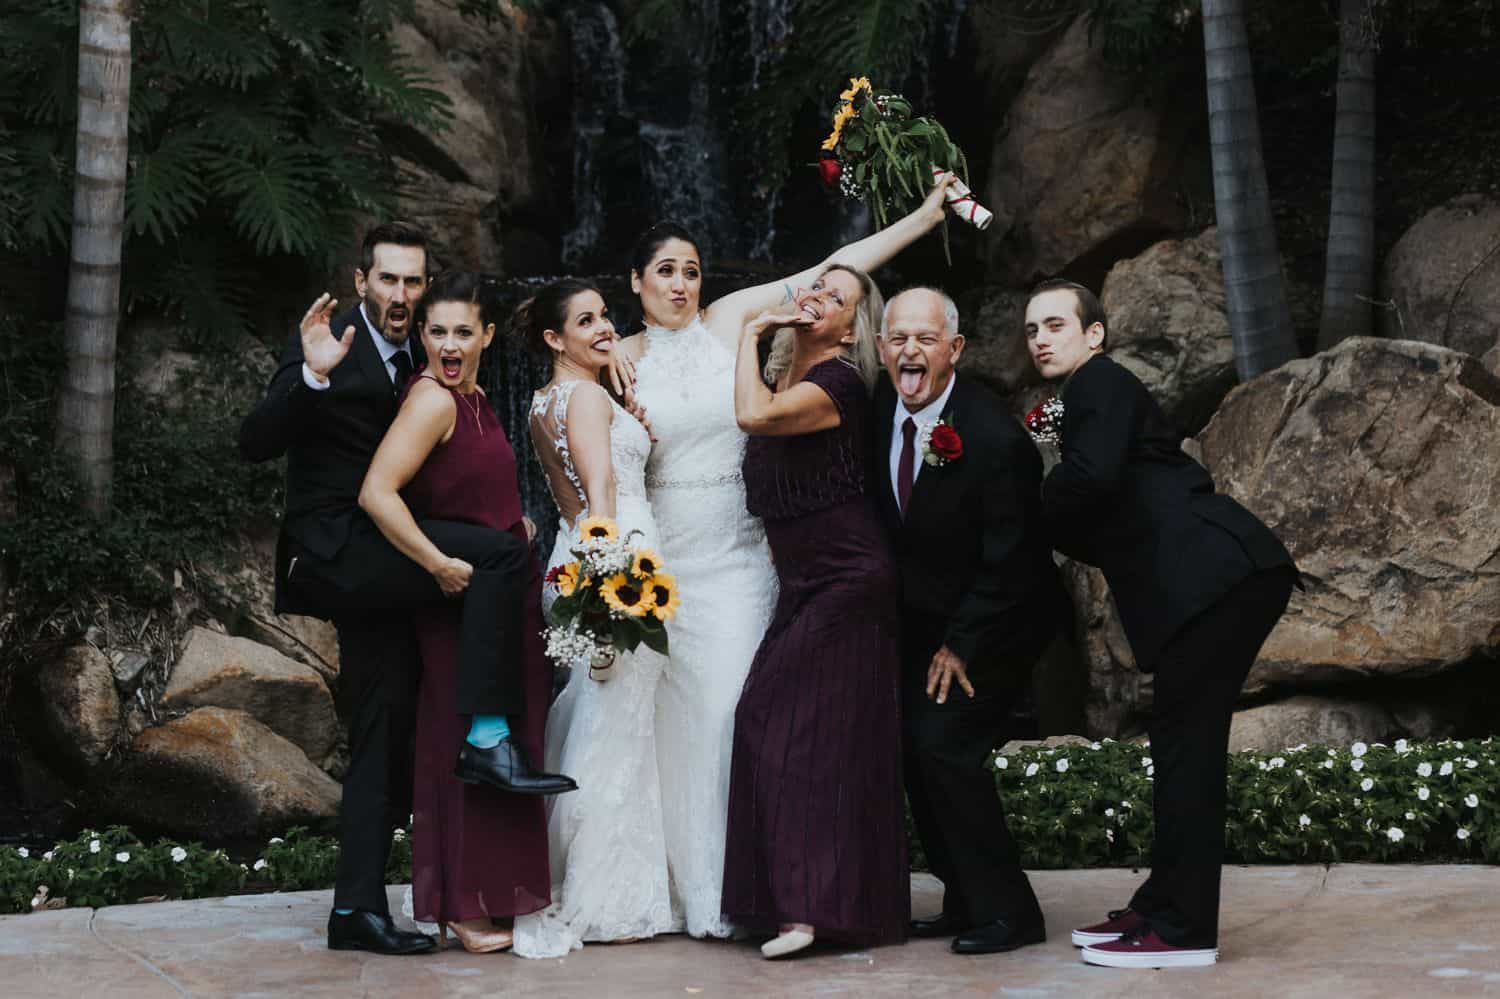 A family strikes a silly pose during their wedding day portrait